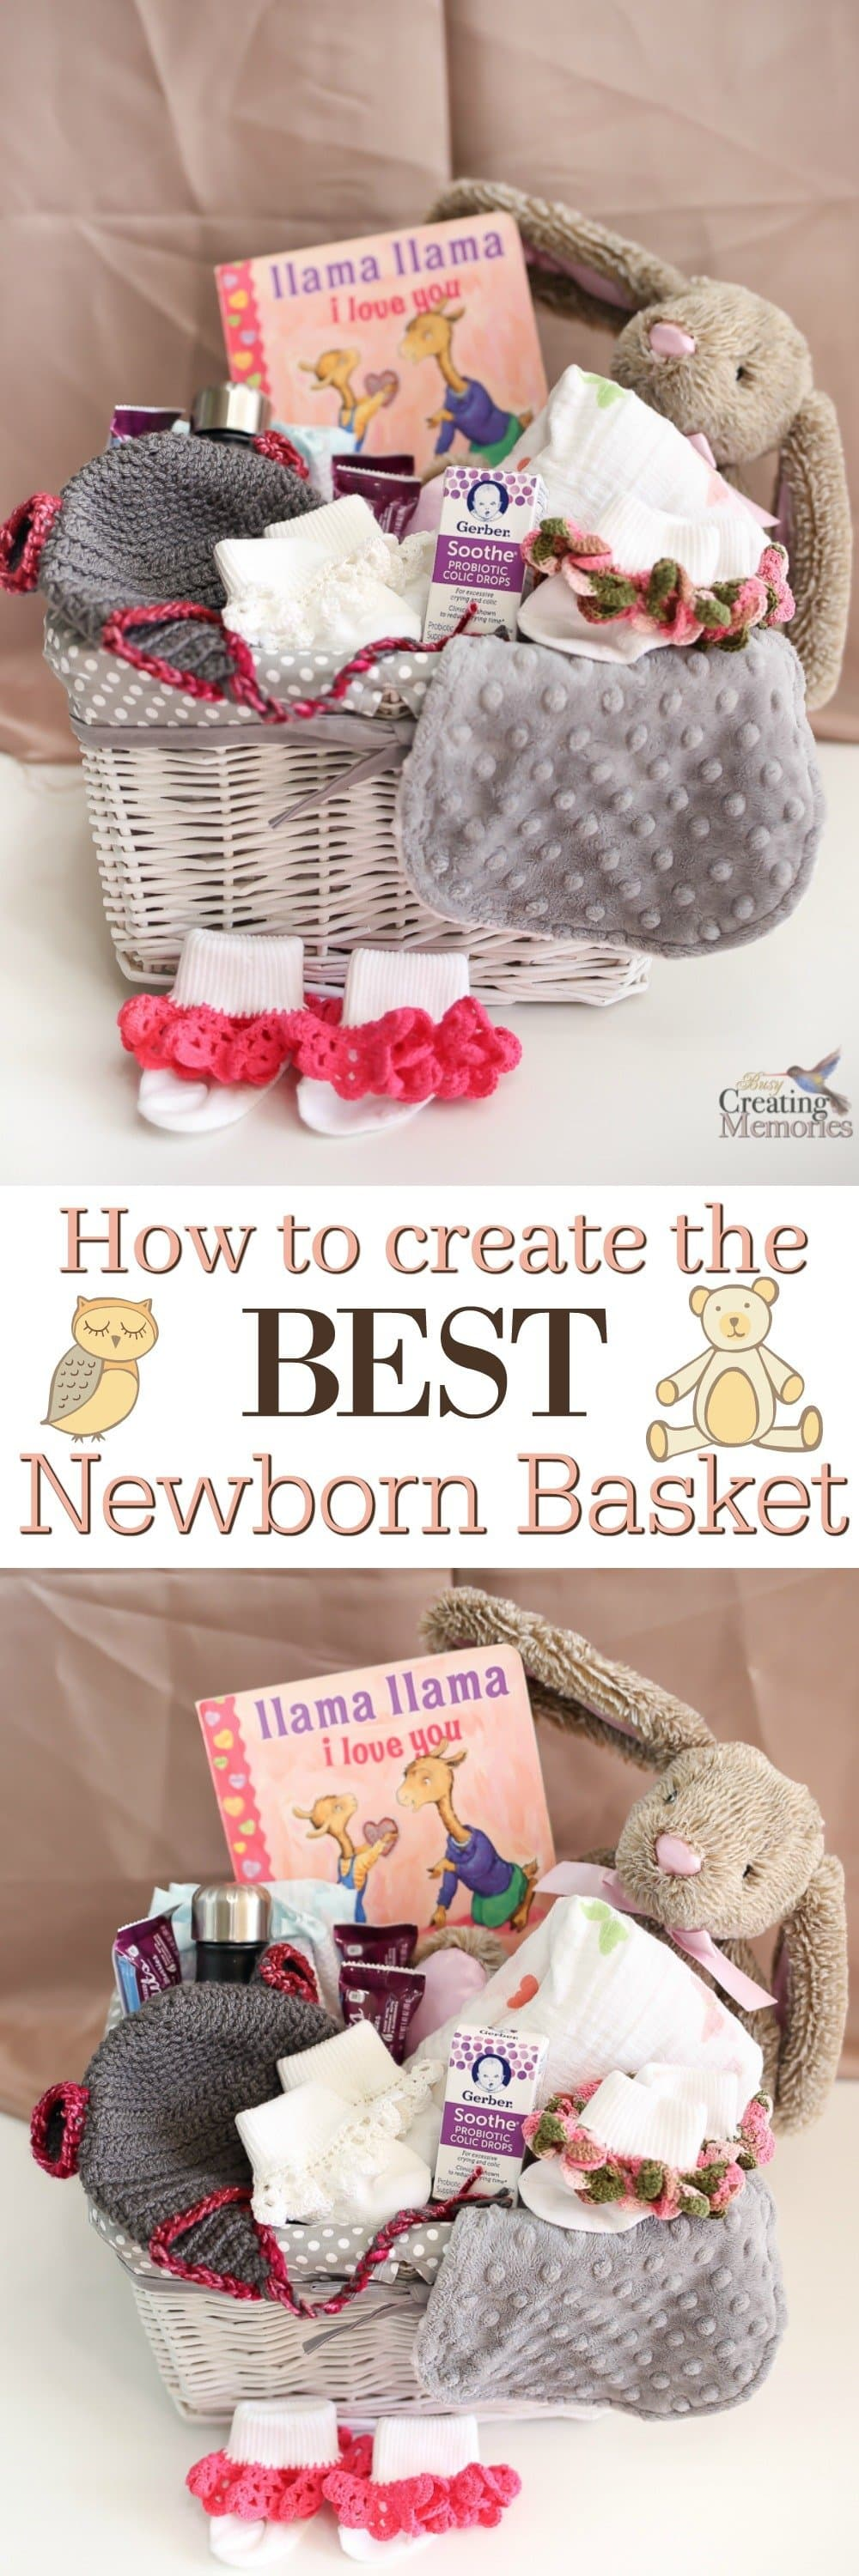 Don't give the same old boring gifts after a new baby arrives! Learn how to make the best newborn gift basket and the best items that stand out and help the new mom!